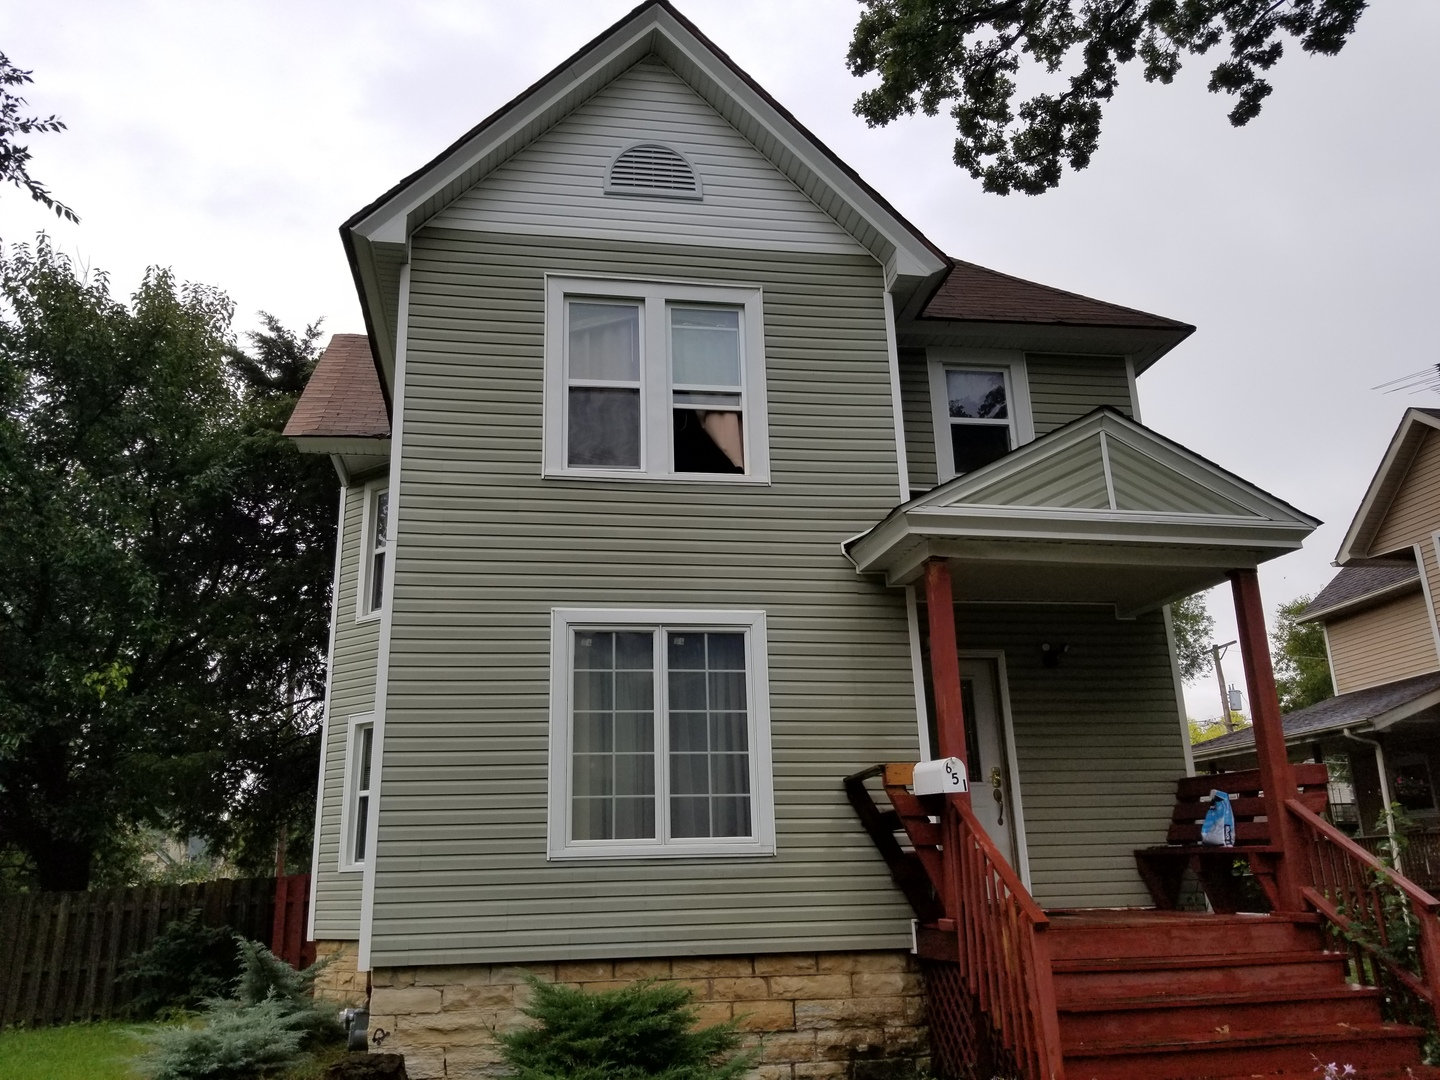 651 WHITLEY Avenue 60433 - One of Joliet Homes for Sale